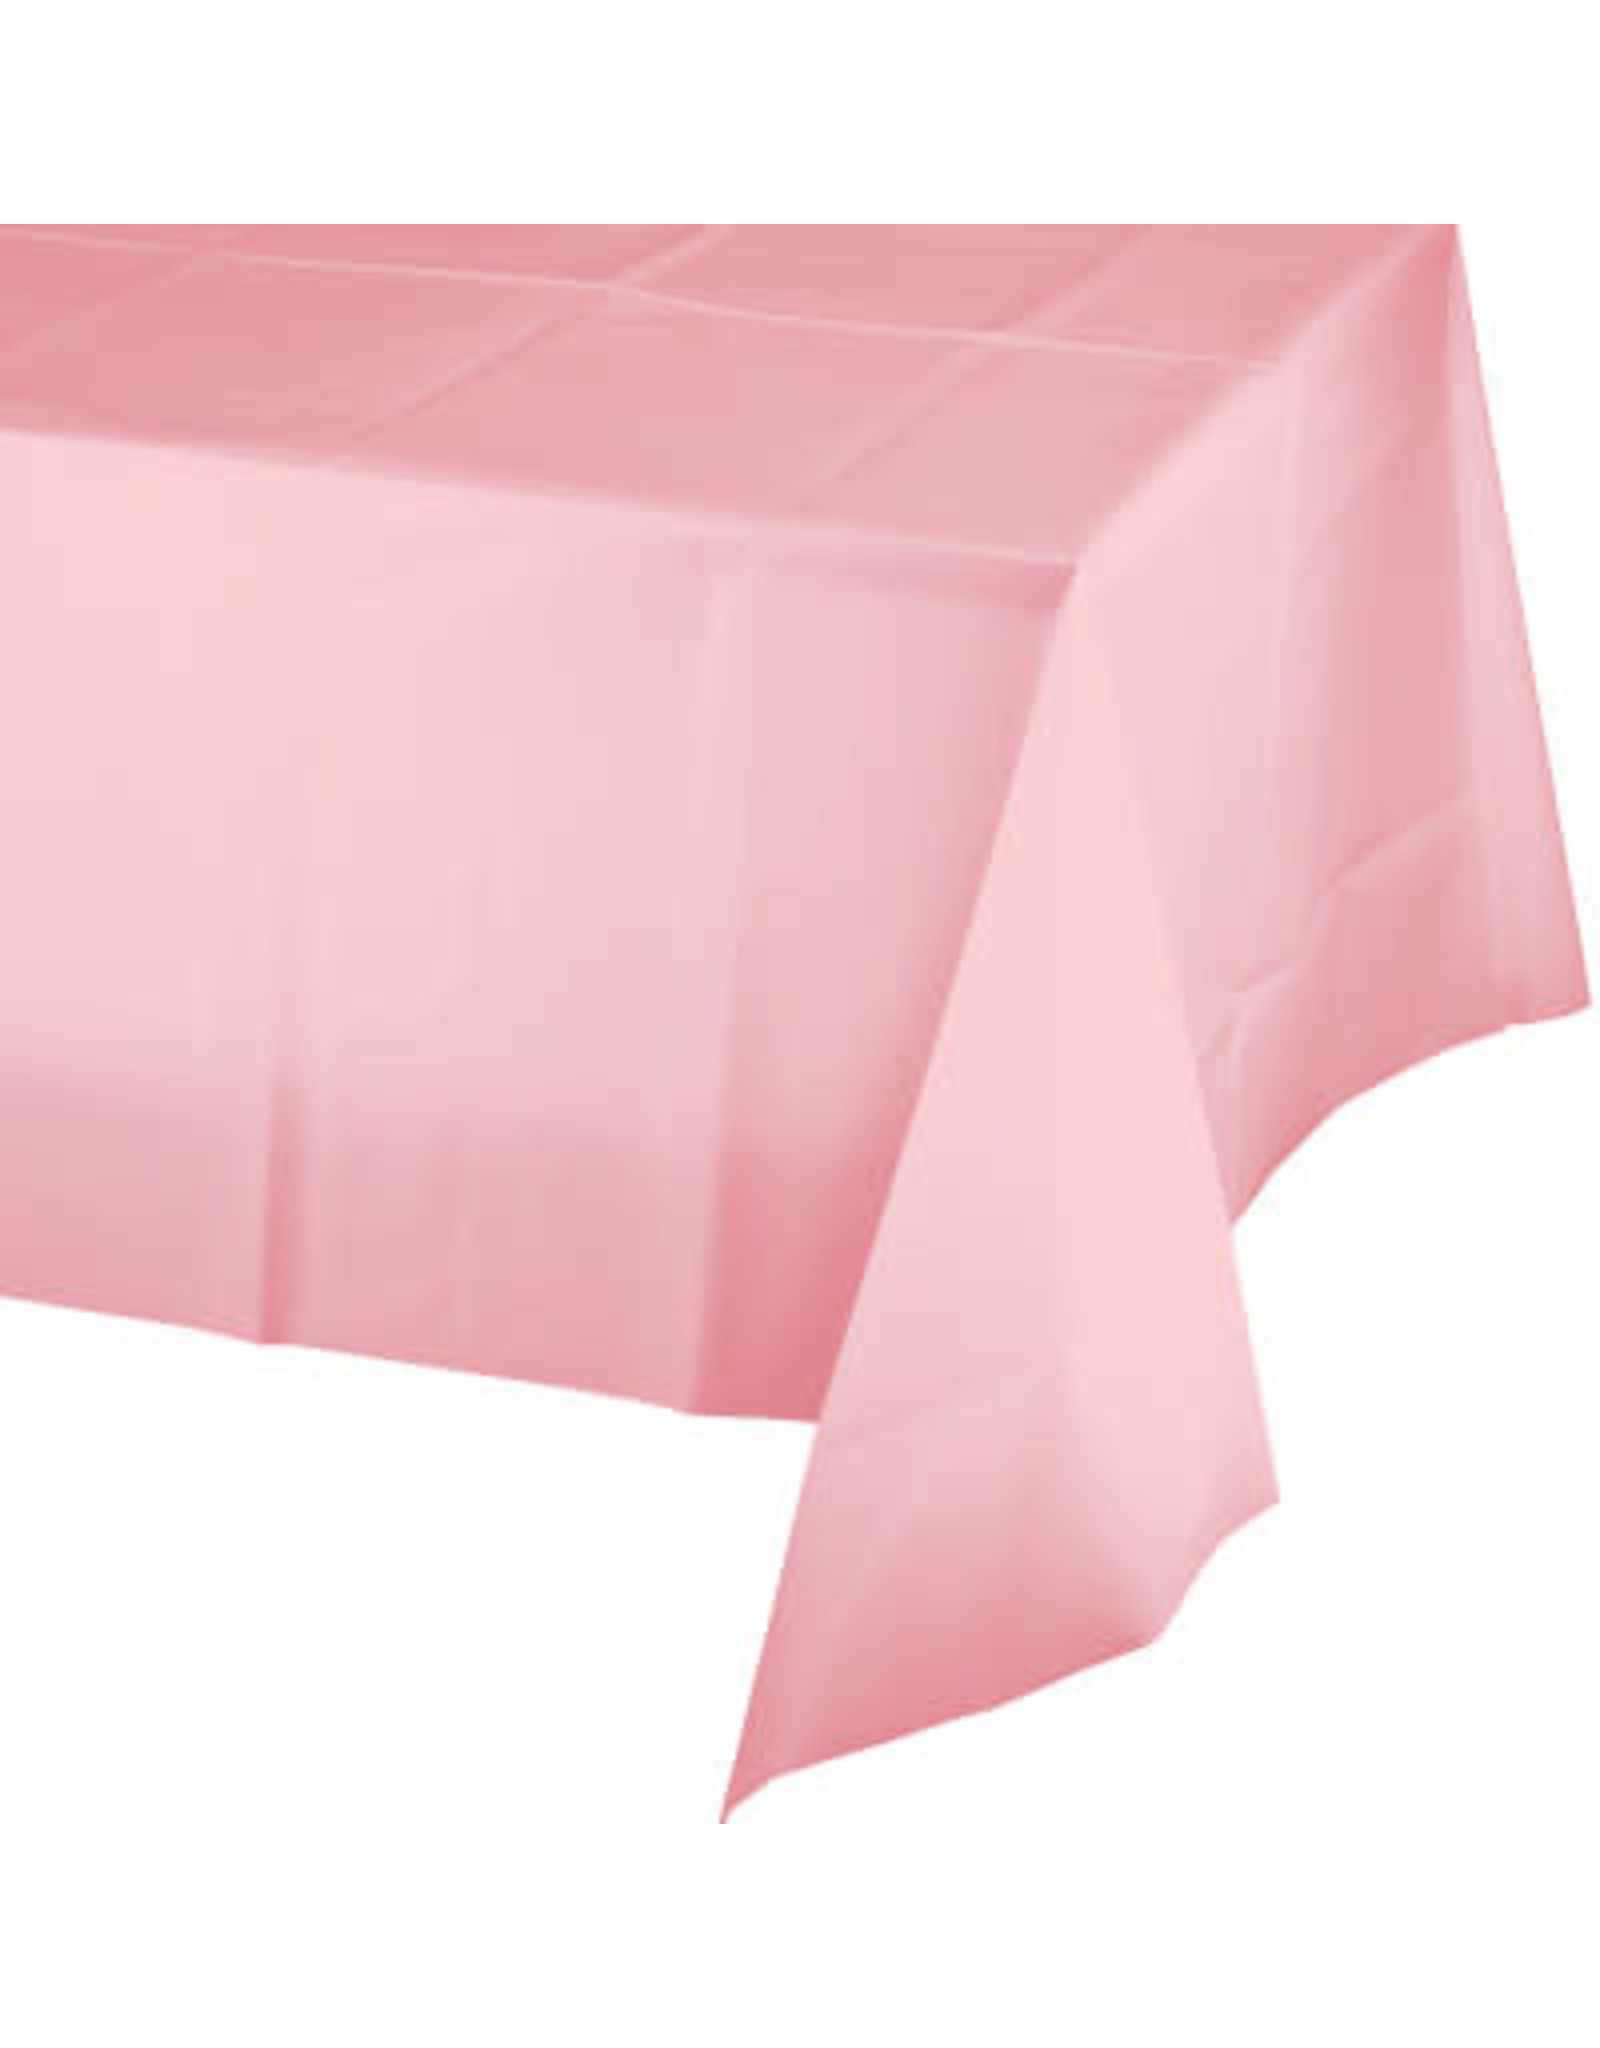 Touch of Color CLASSIC PINK PLASTIC TABLECLOTH